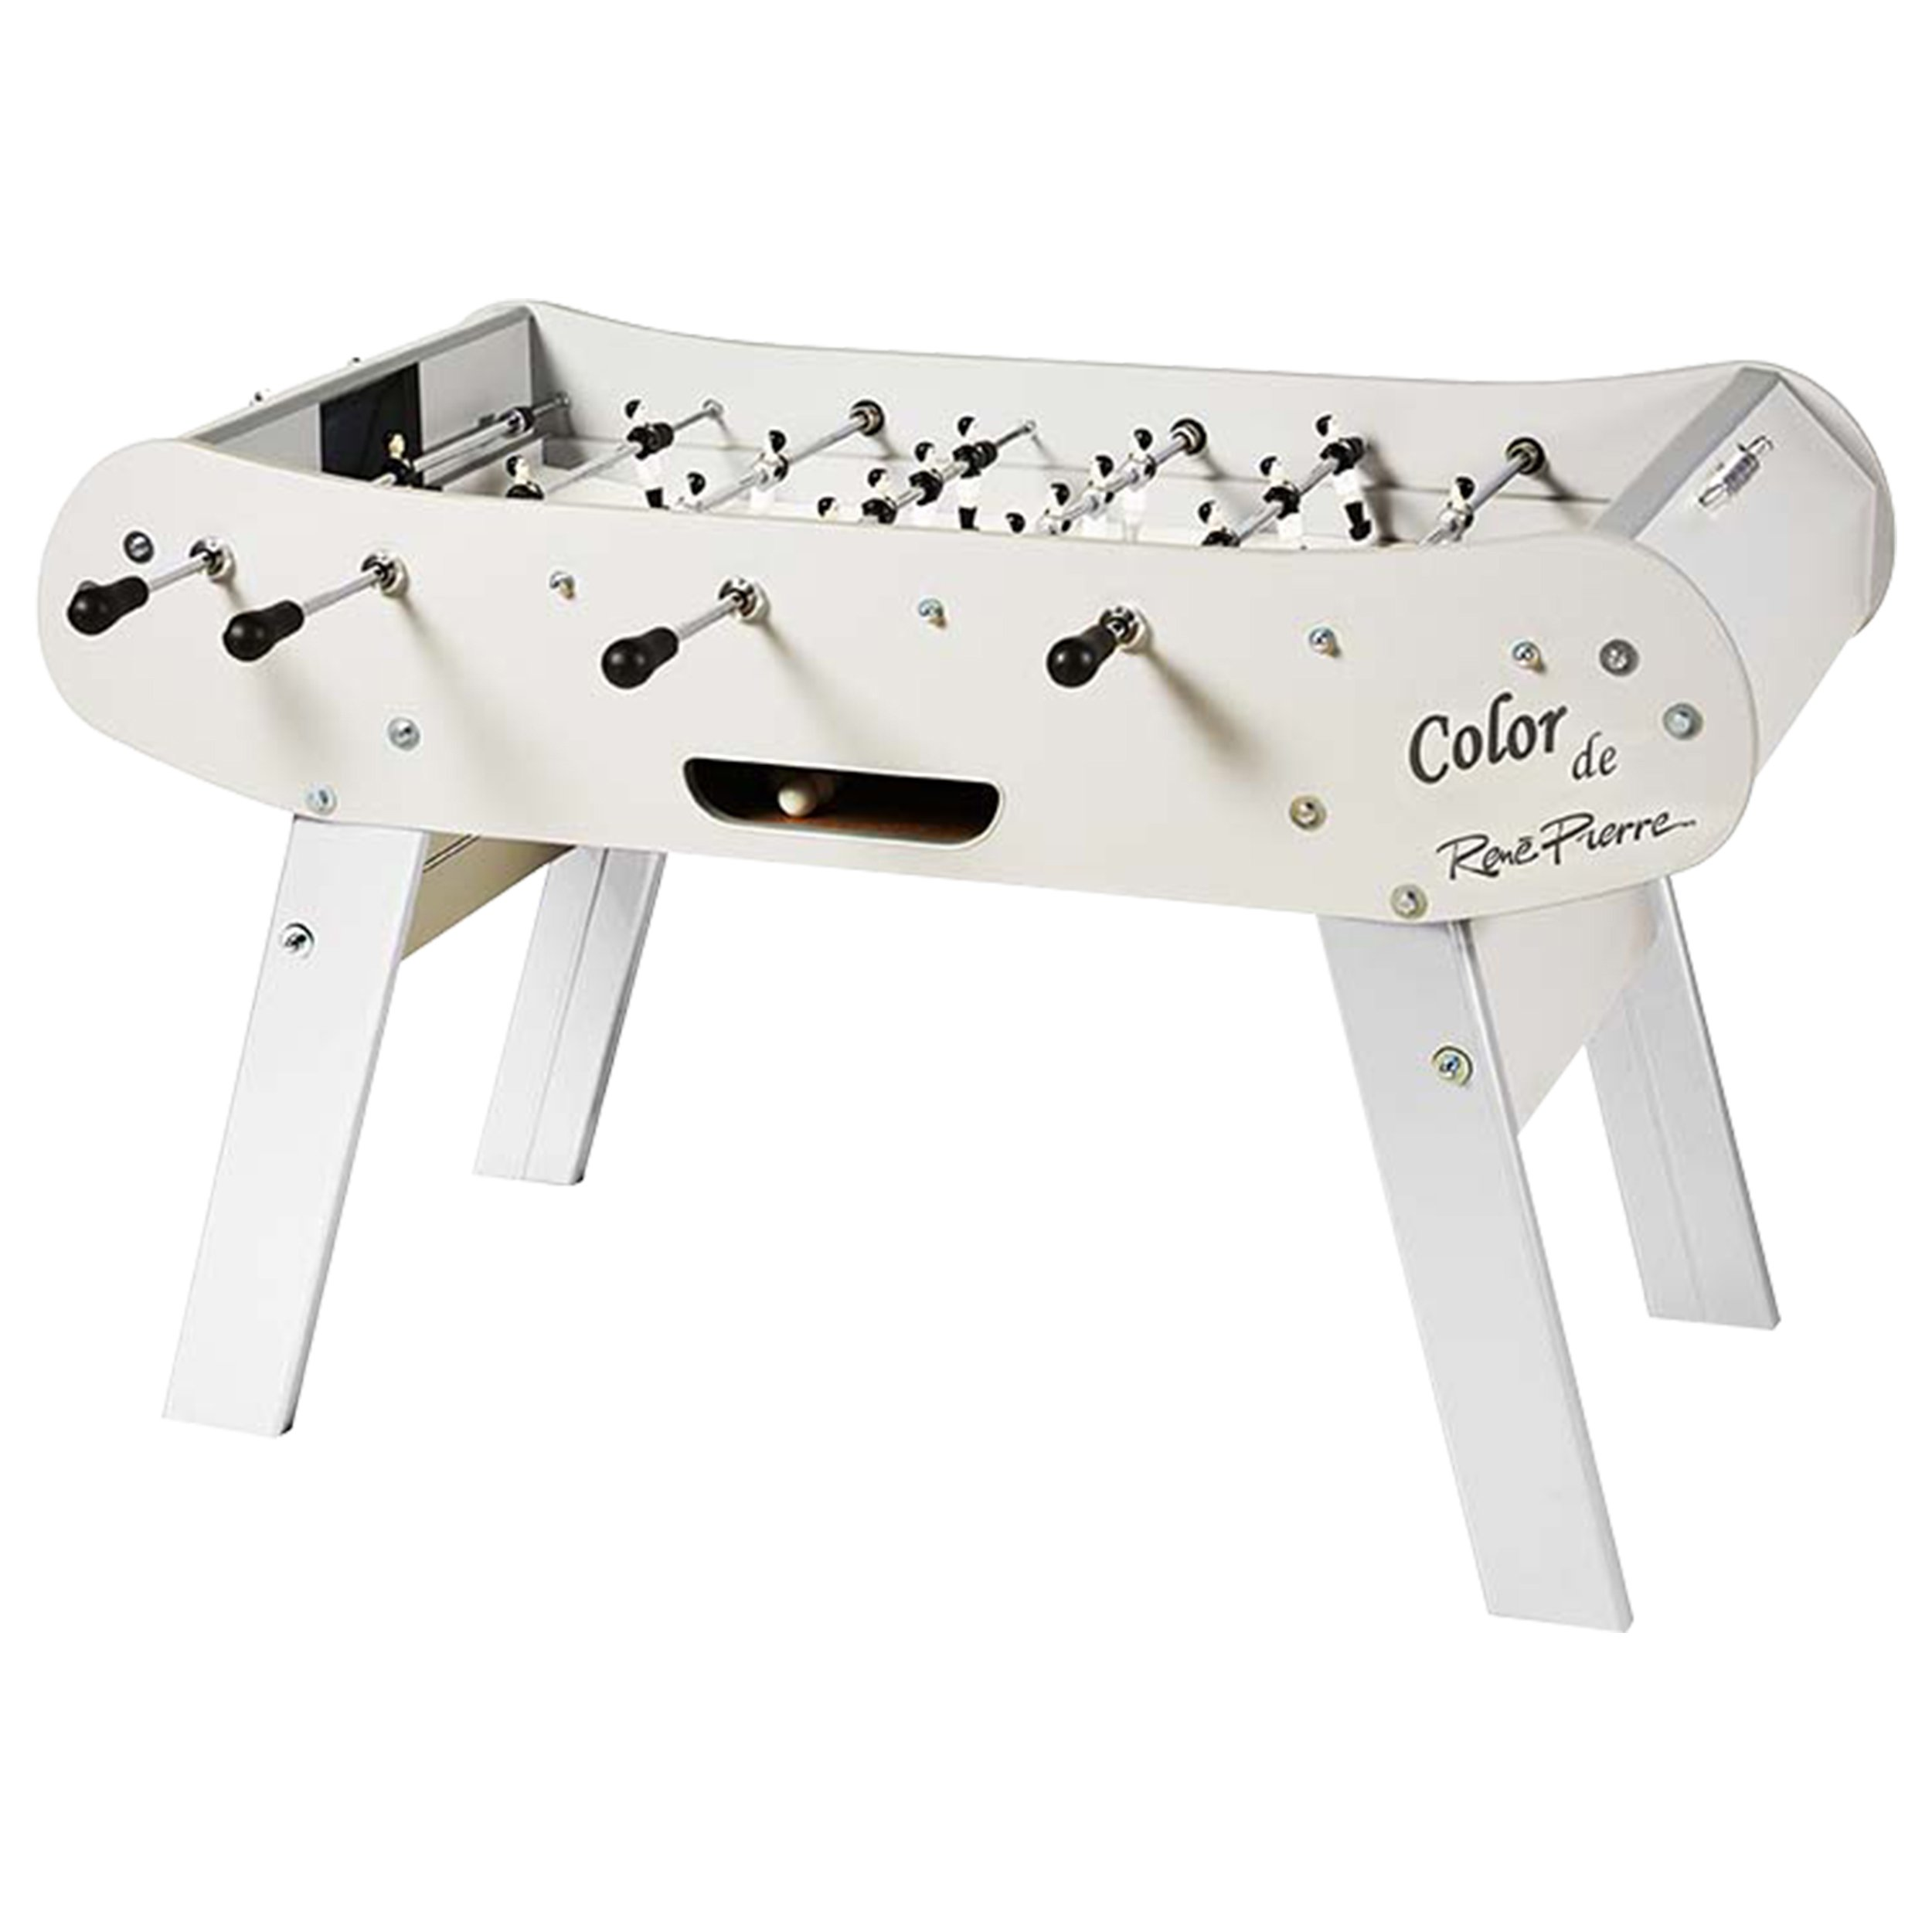 René Pierre Color White Foosball Table with Safety Telescoping Rods, Ergonomic Handles, and Single Goalies by René Pierre